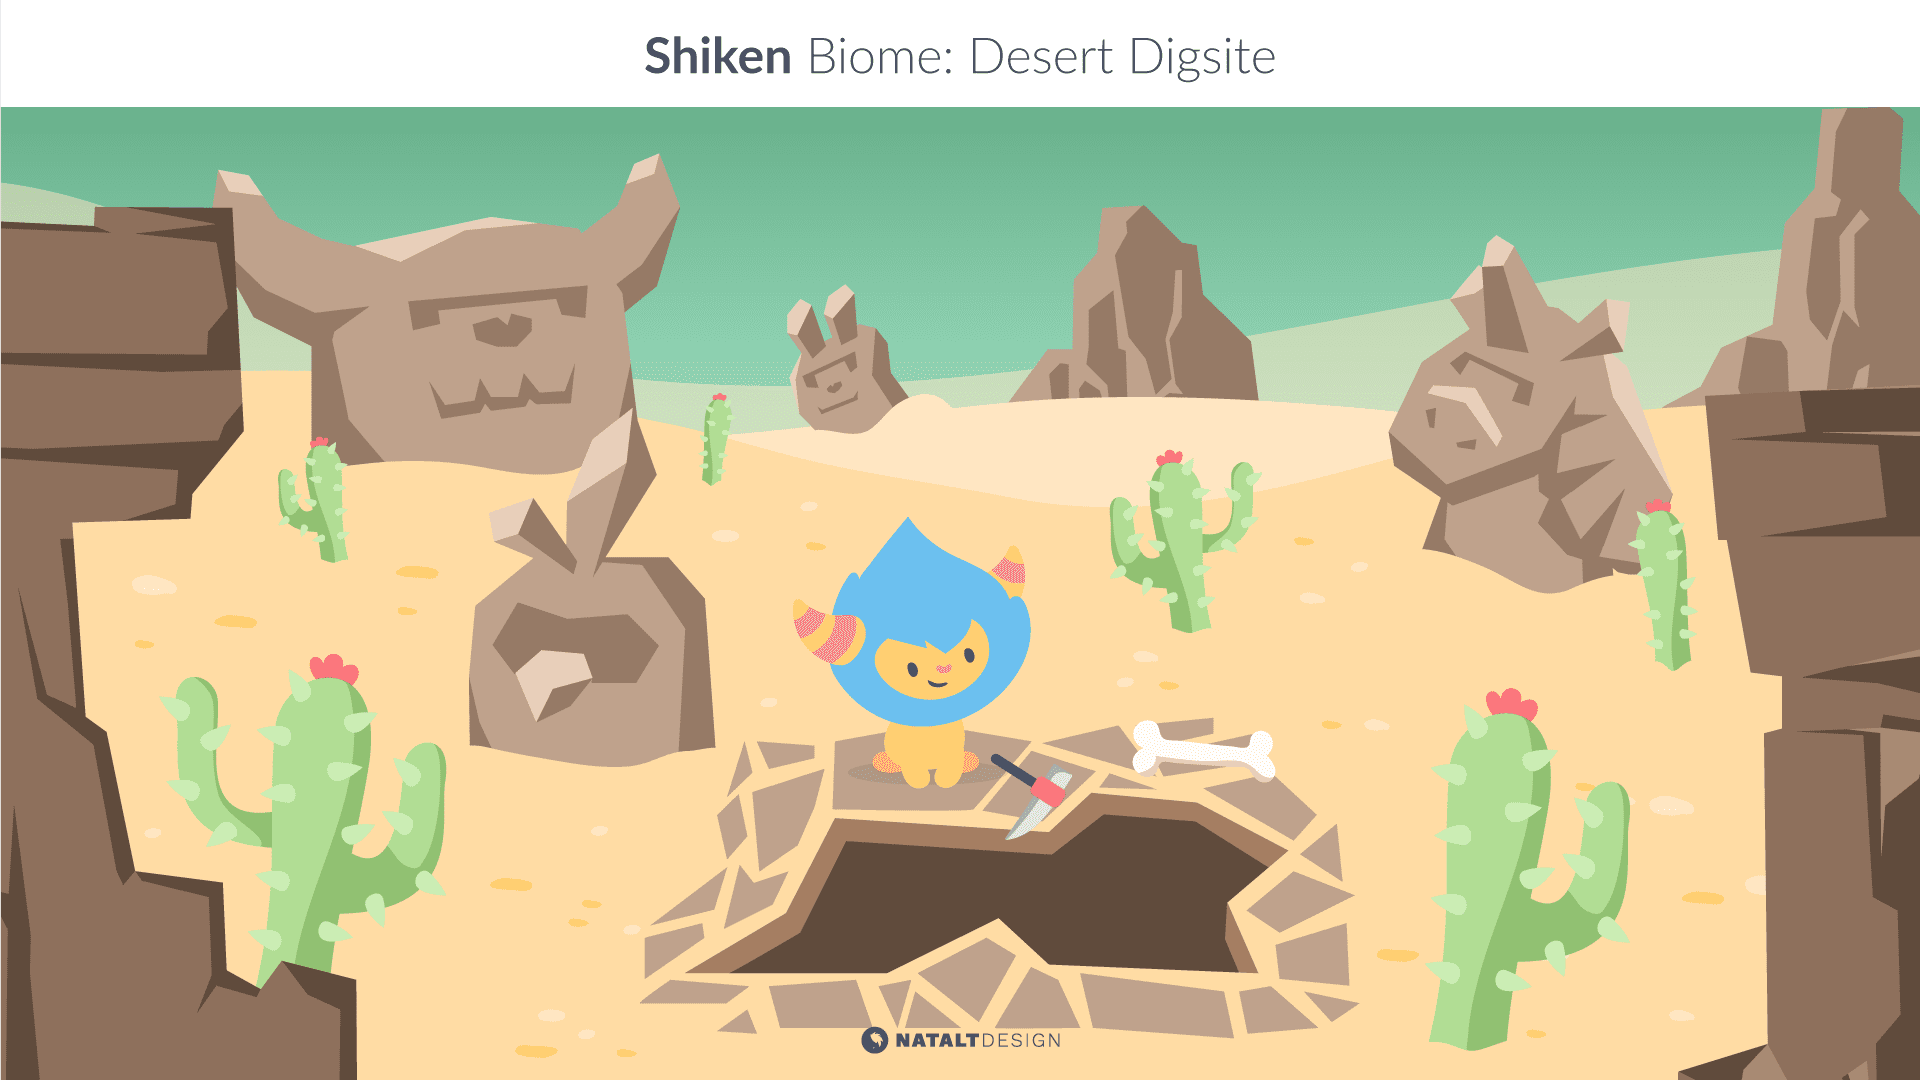 Shiken biome design